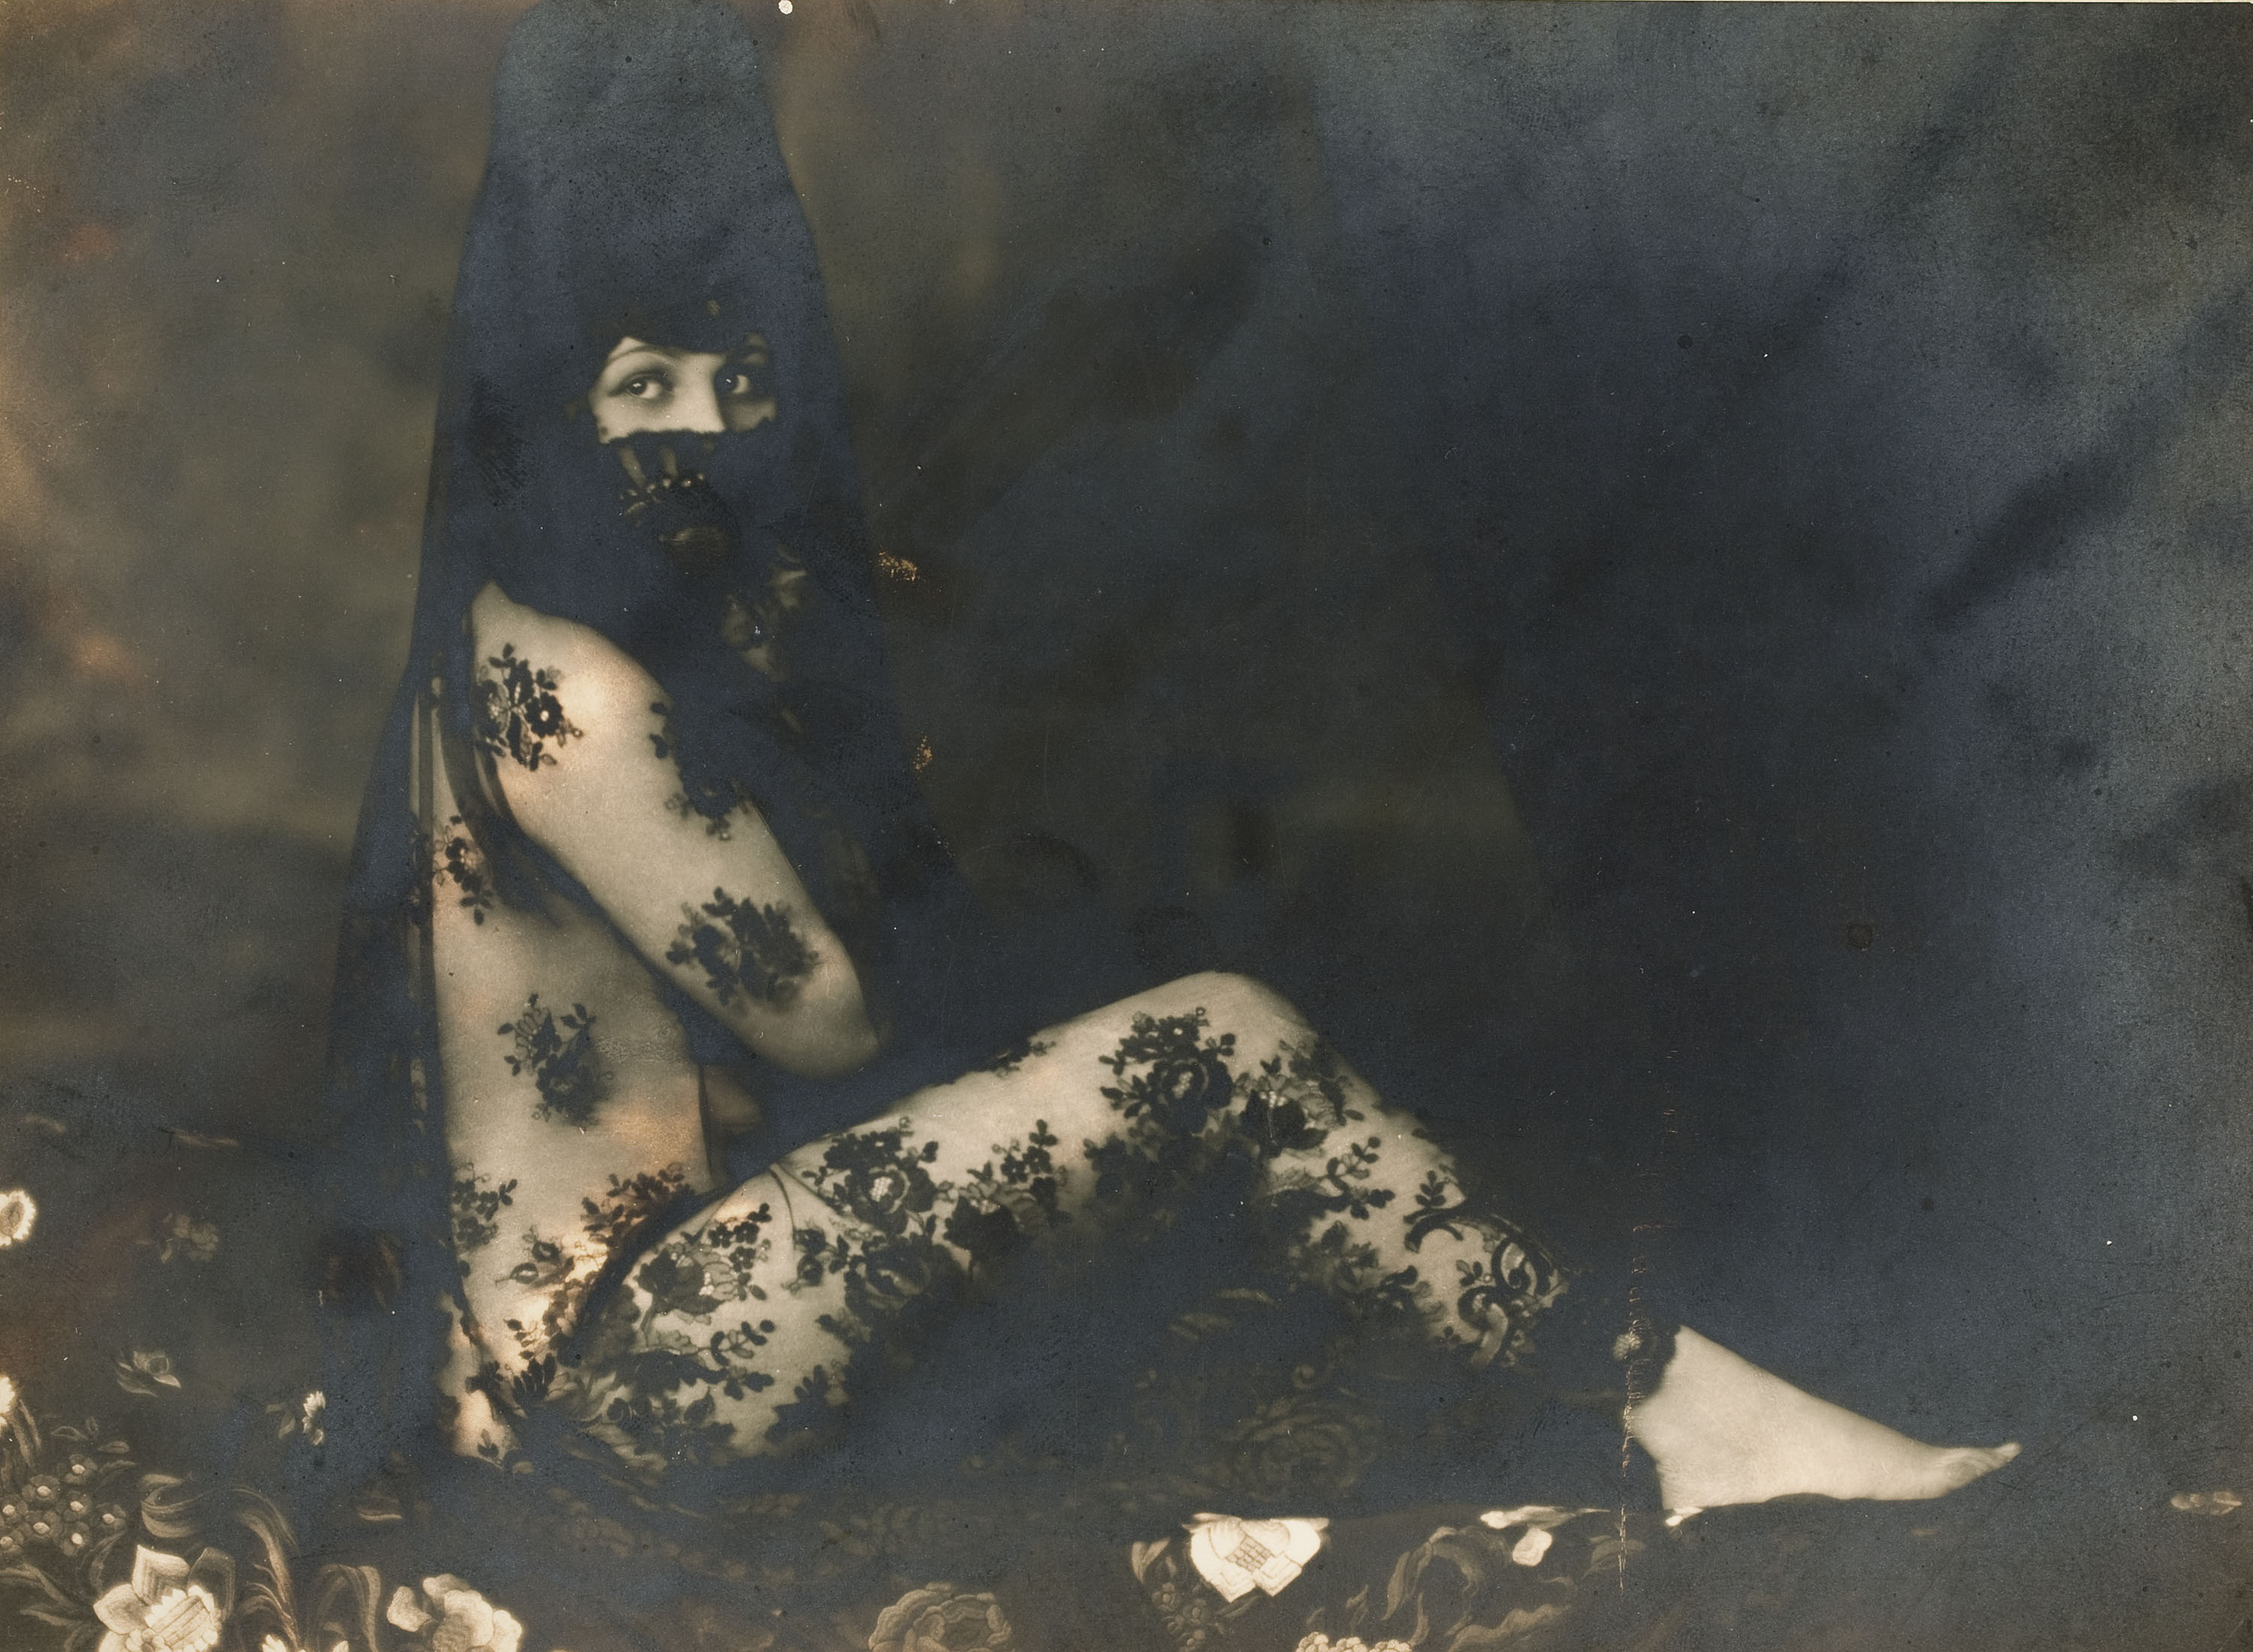 Josep Masana - Untitled [Seated Maja with Mantilla] - Between 1920-1940